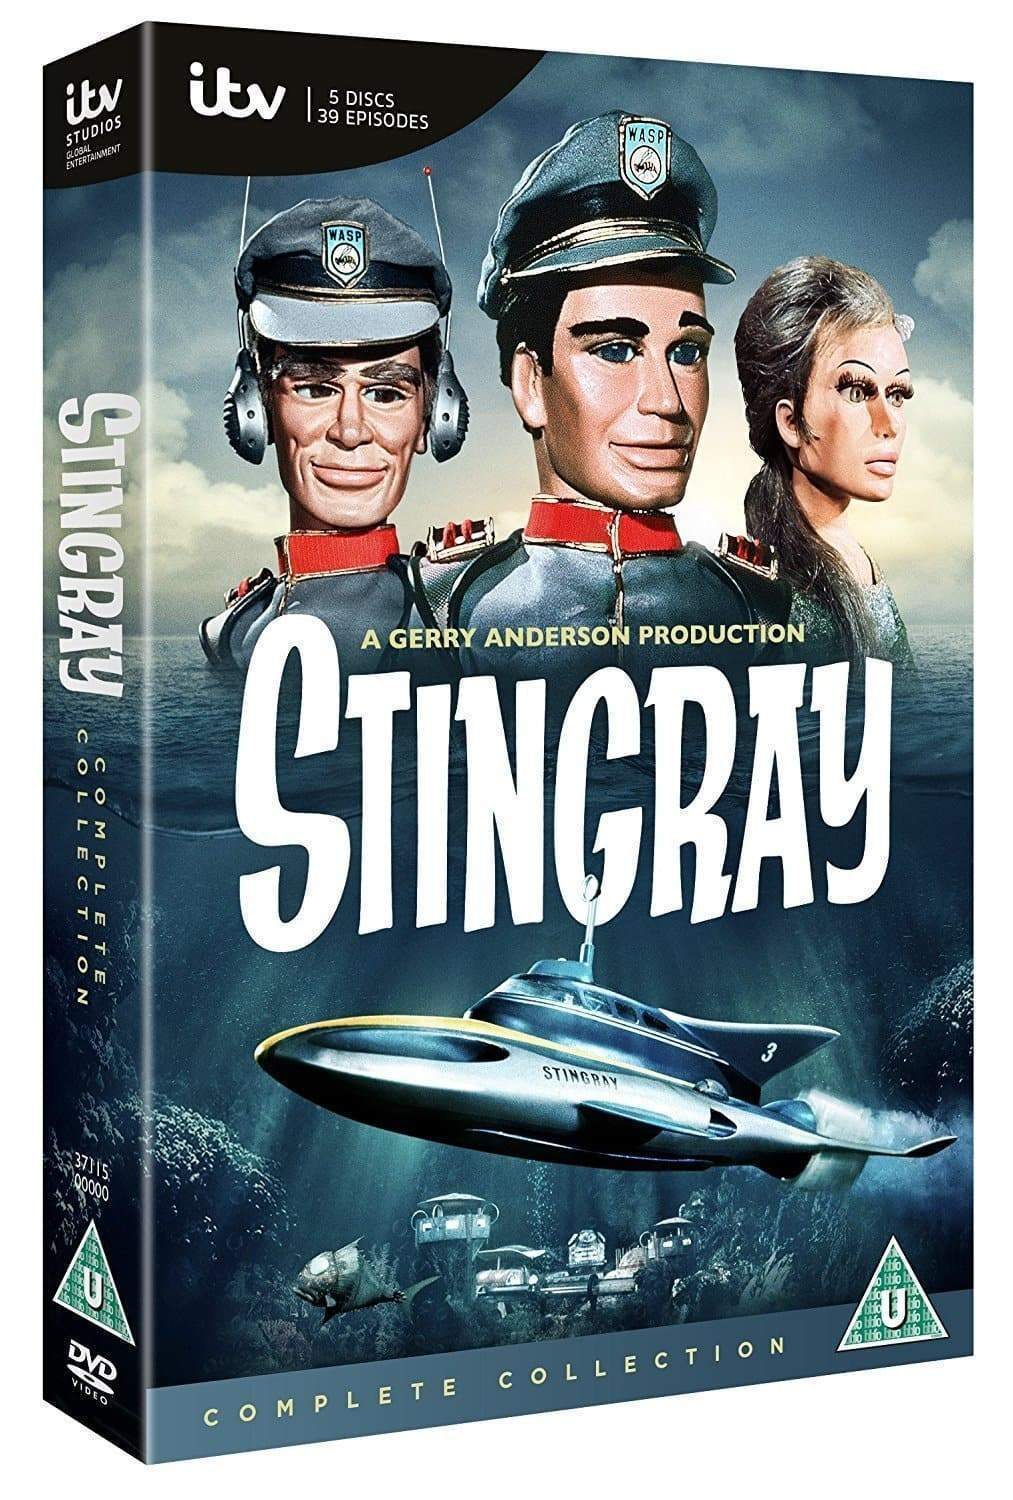 Stingray The Complete Collection [DVD](Region 2) - The Gerry Anderson Store